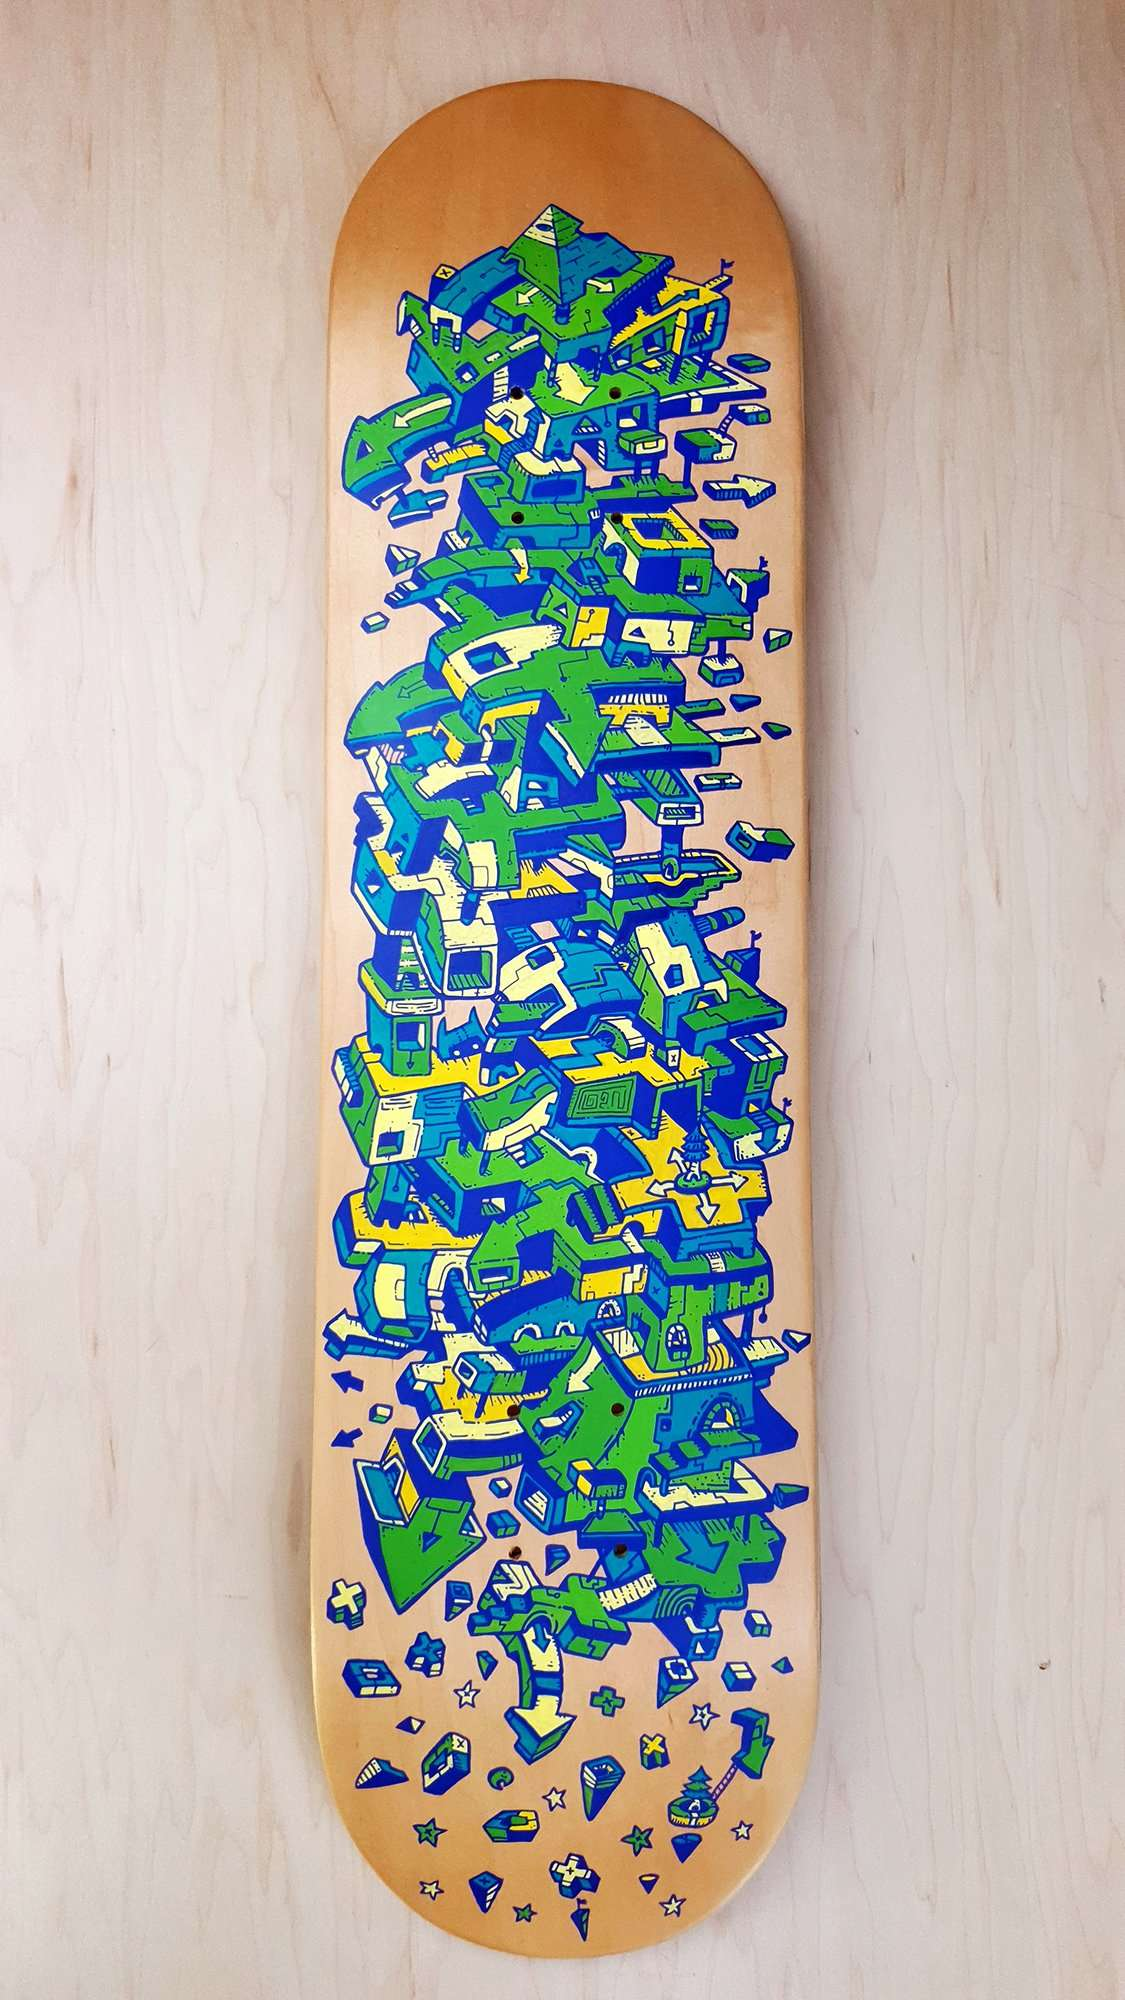 Brogression Skateboard Handpainted artwork by Dune Haggar Graphic Artist